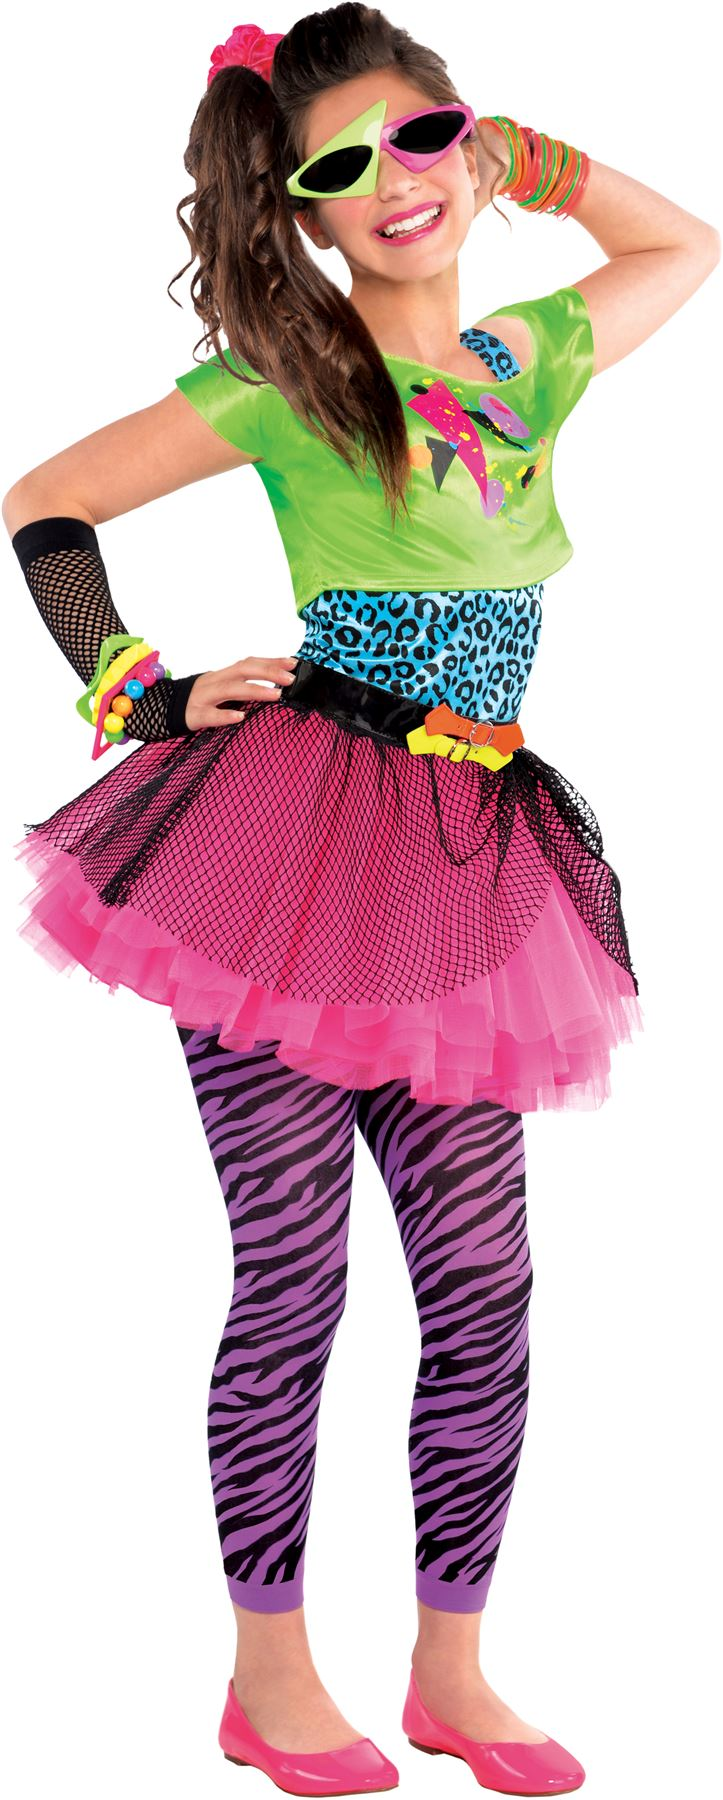 Details about SALE! Teen 80s Totally Awesome Girls Fancy Dress Costume  Party Outfit Age 10,14